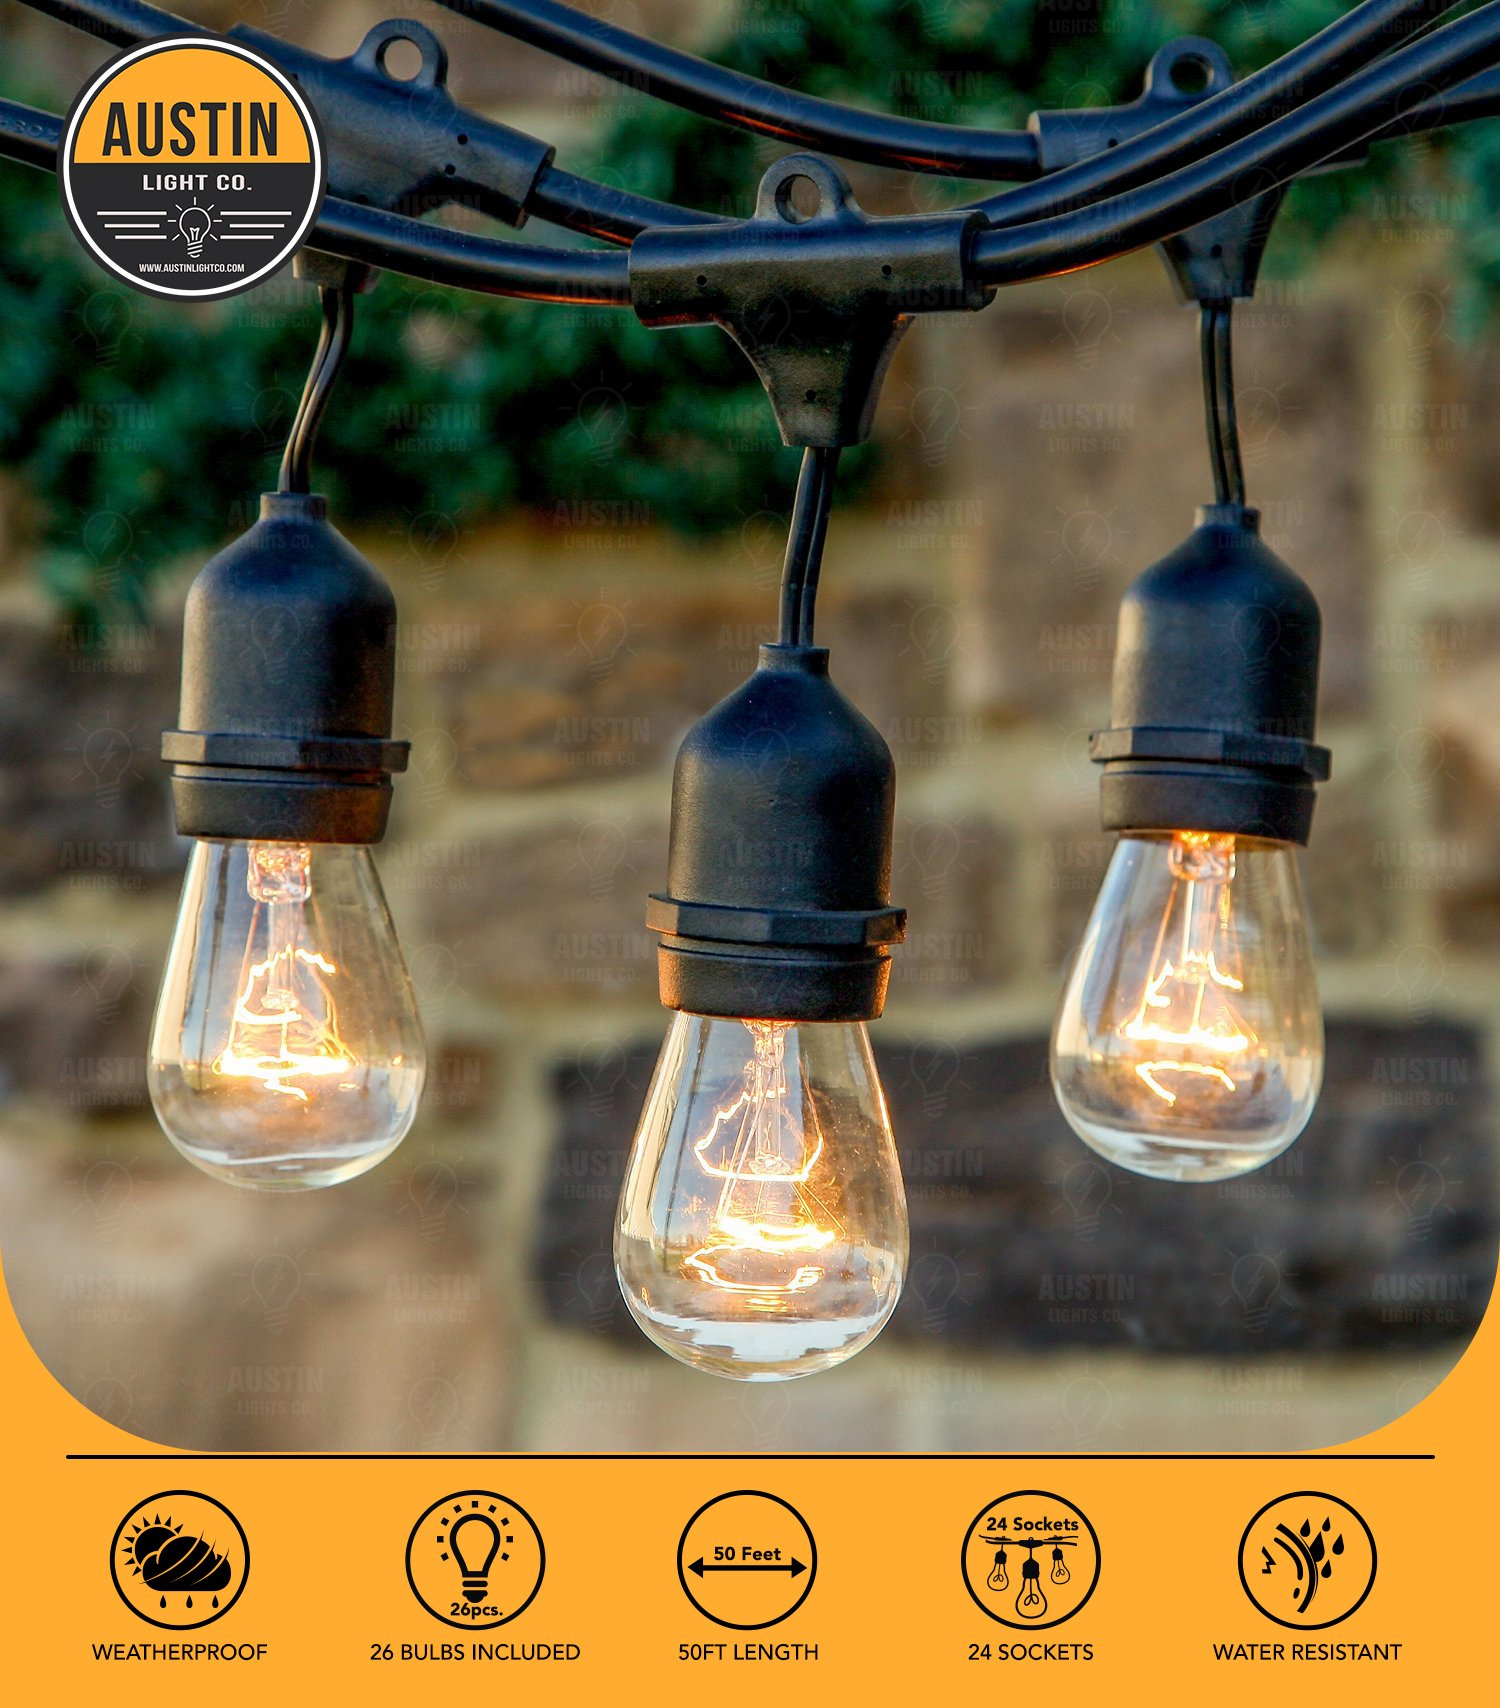 Austin Light Co. Outdoor Commercial String Globe Lights with Hanging Drop Sockets - 50ft - 24 Sockets and bulbs Outdoor or Indoor. Great for patio, cafÃ, party, home, bistro, wedding, backyard